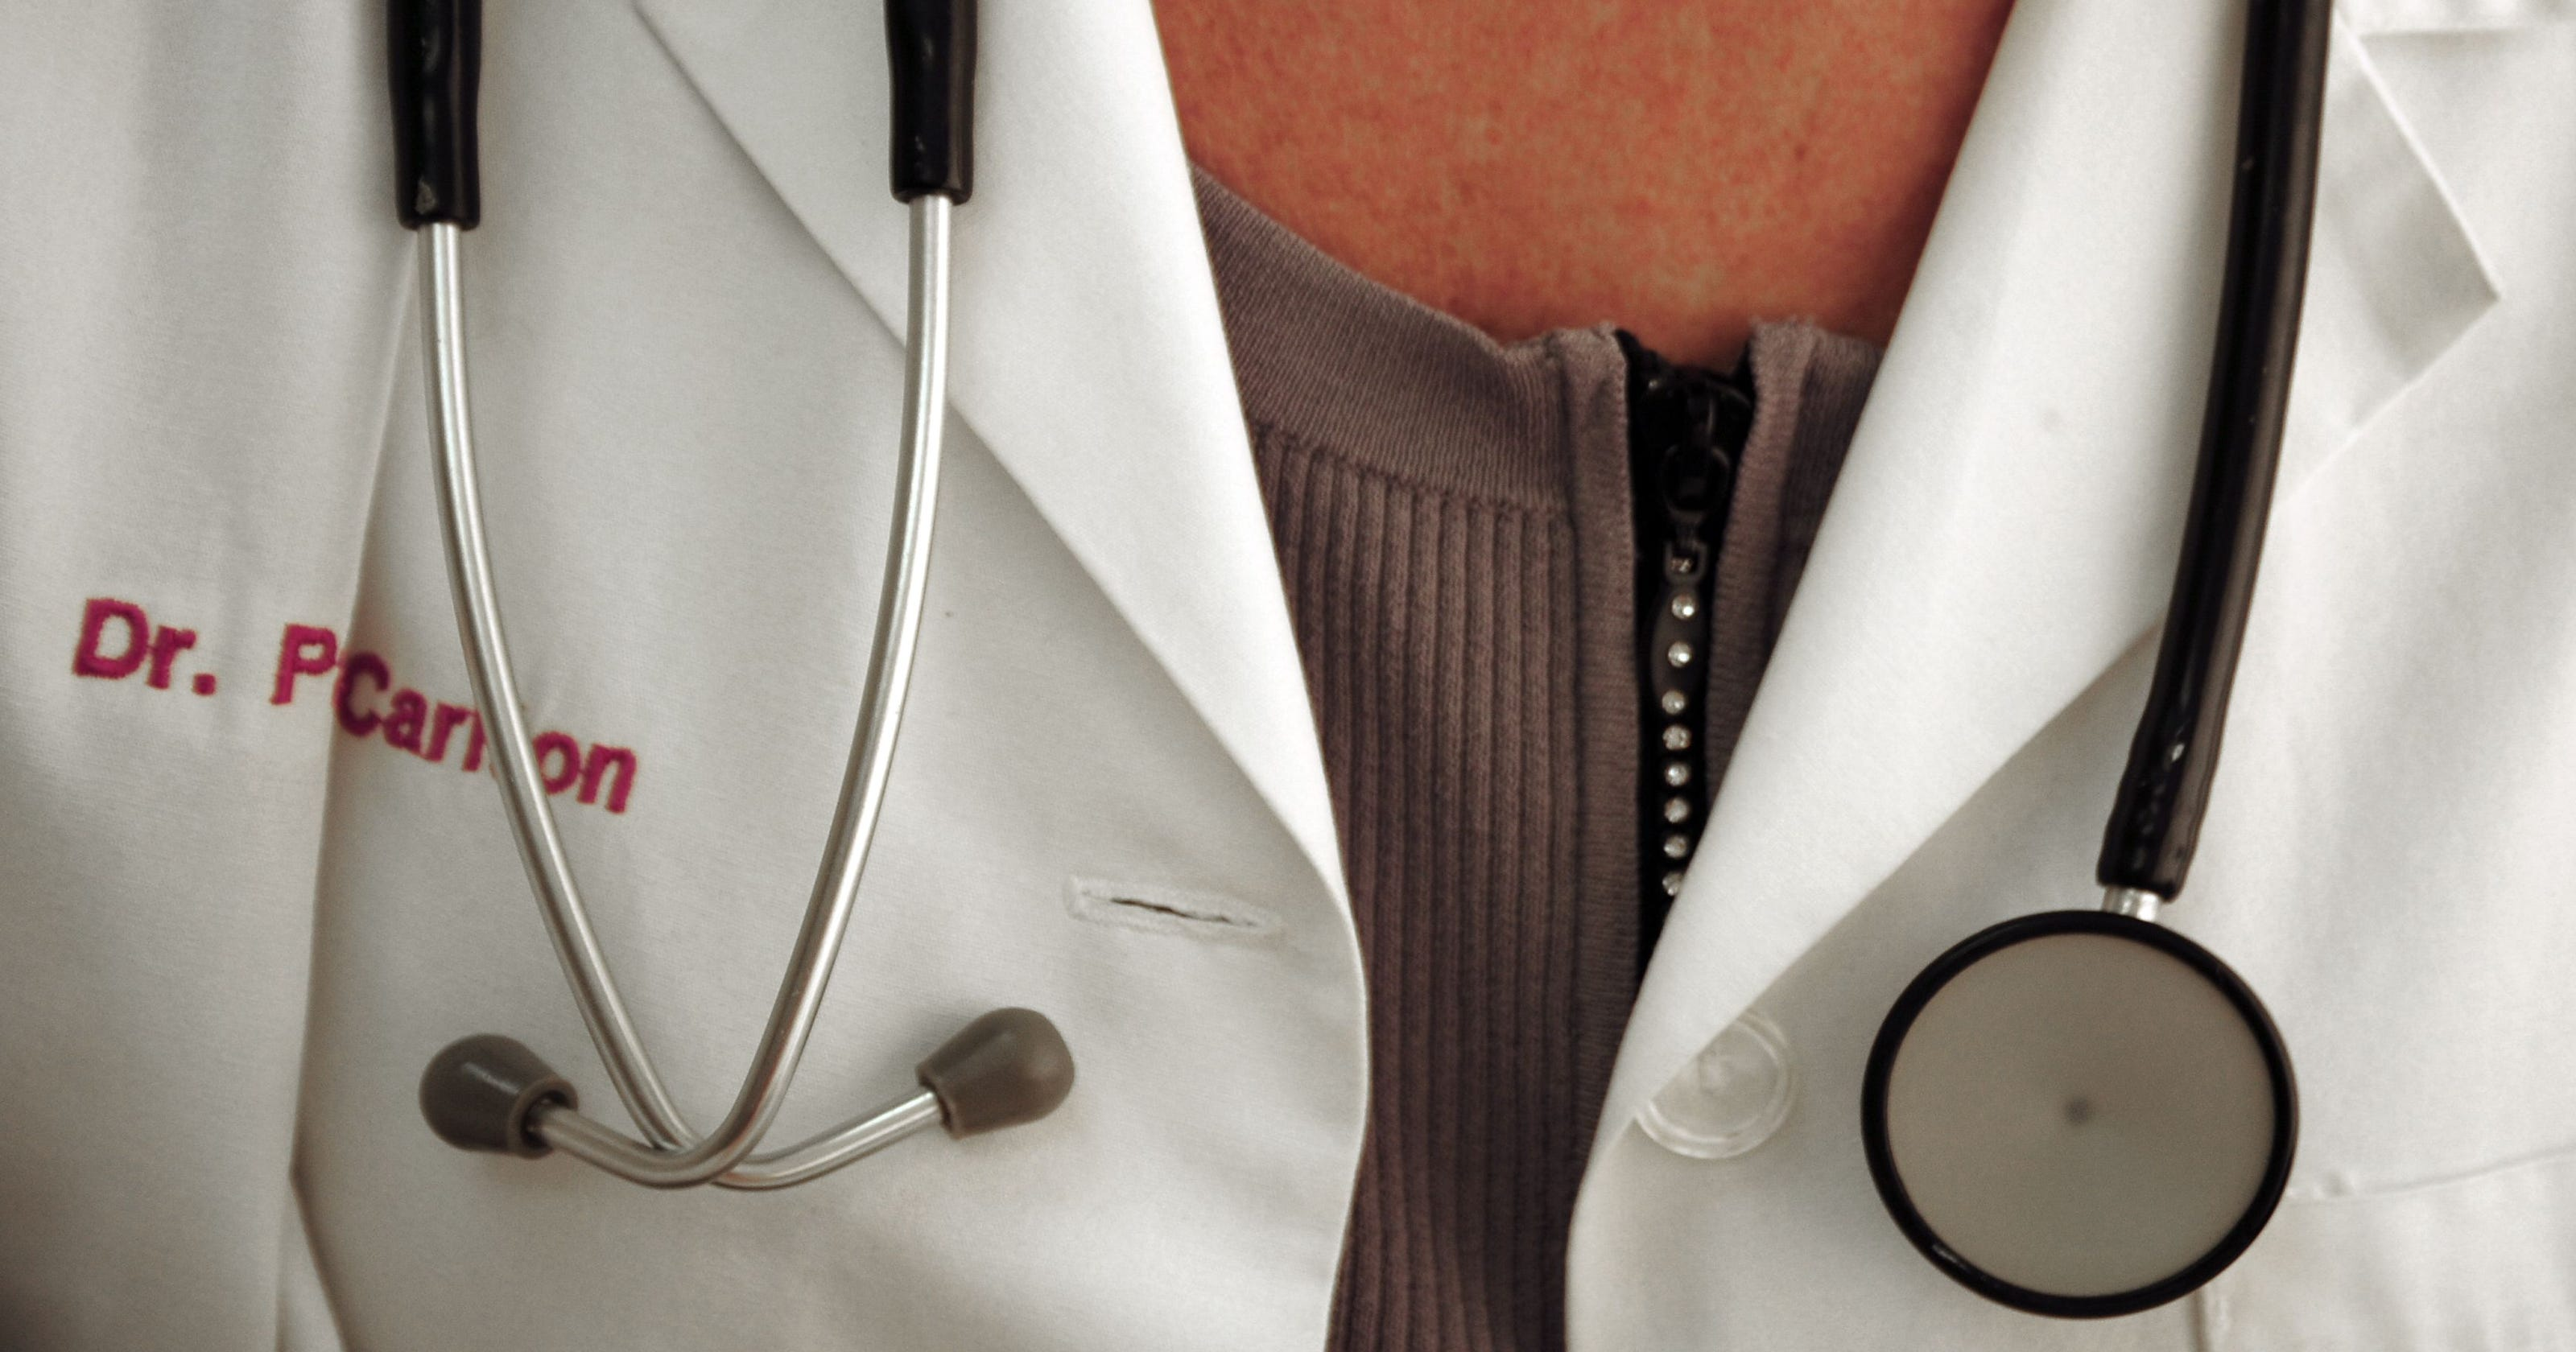 Texas doctor apologizes for saying women \'do not work as hard\'